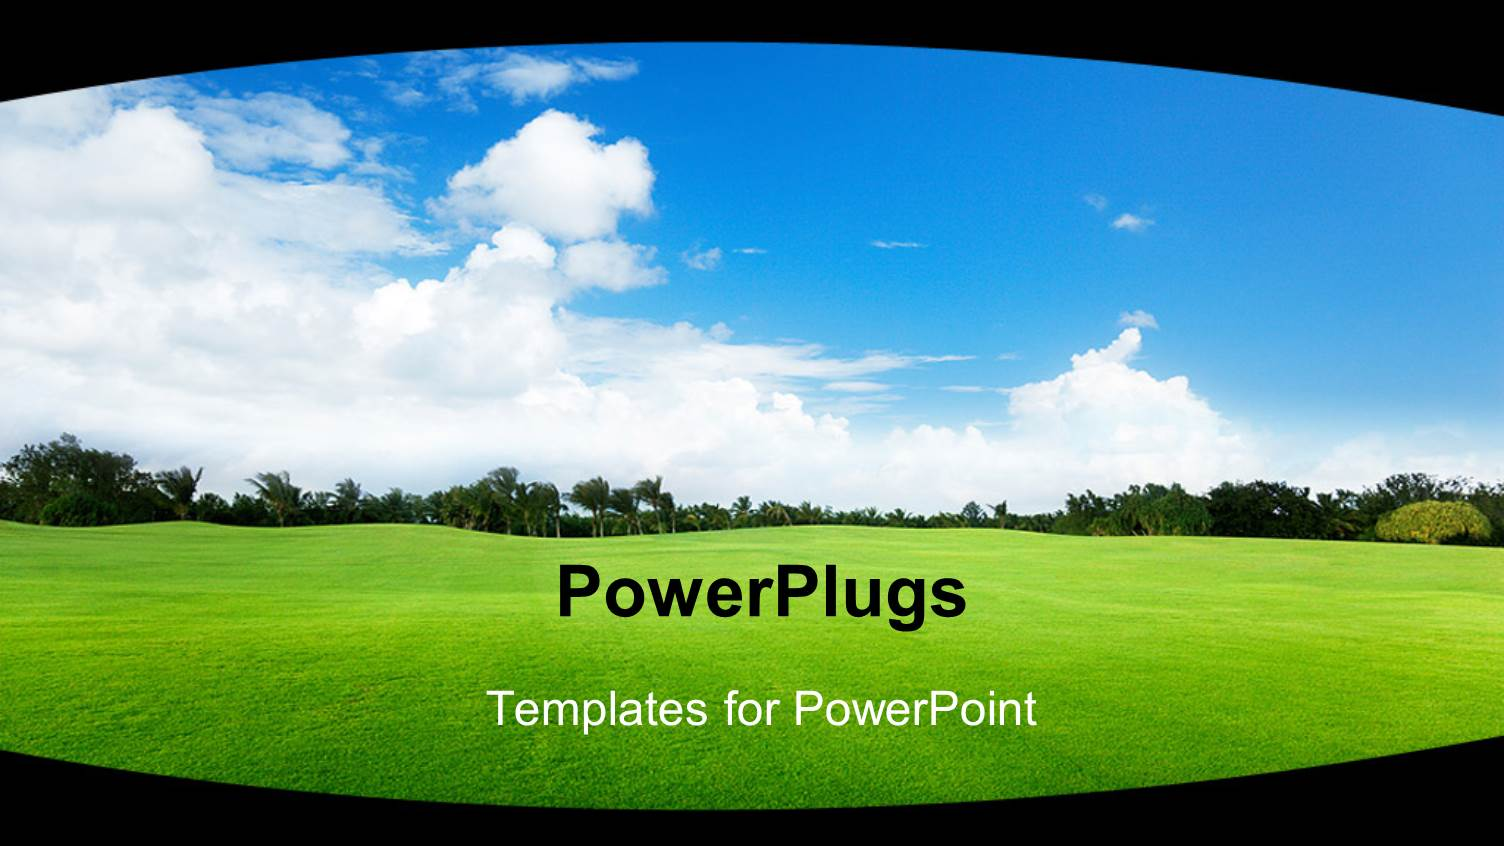 PPT templates Free Download PPT templates for Kingsoft Office